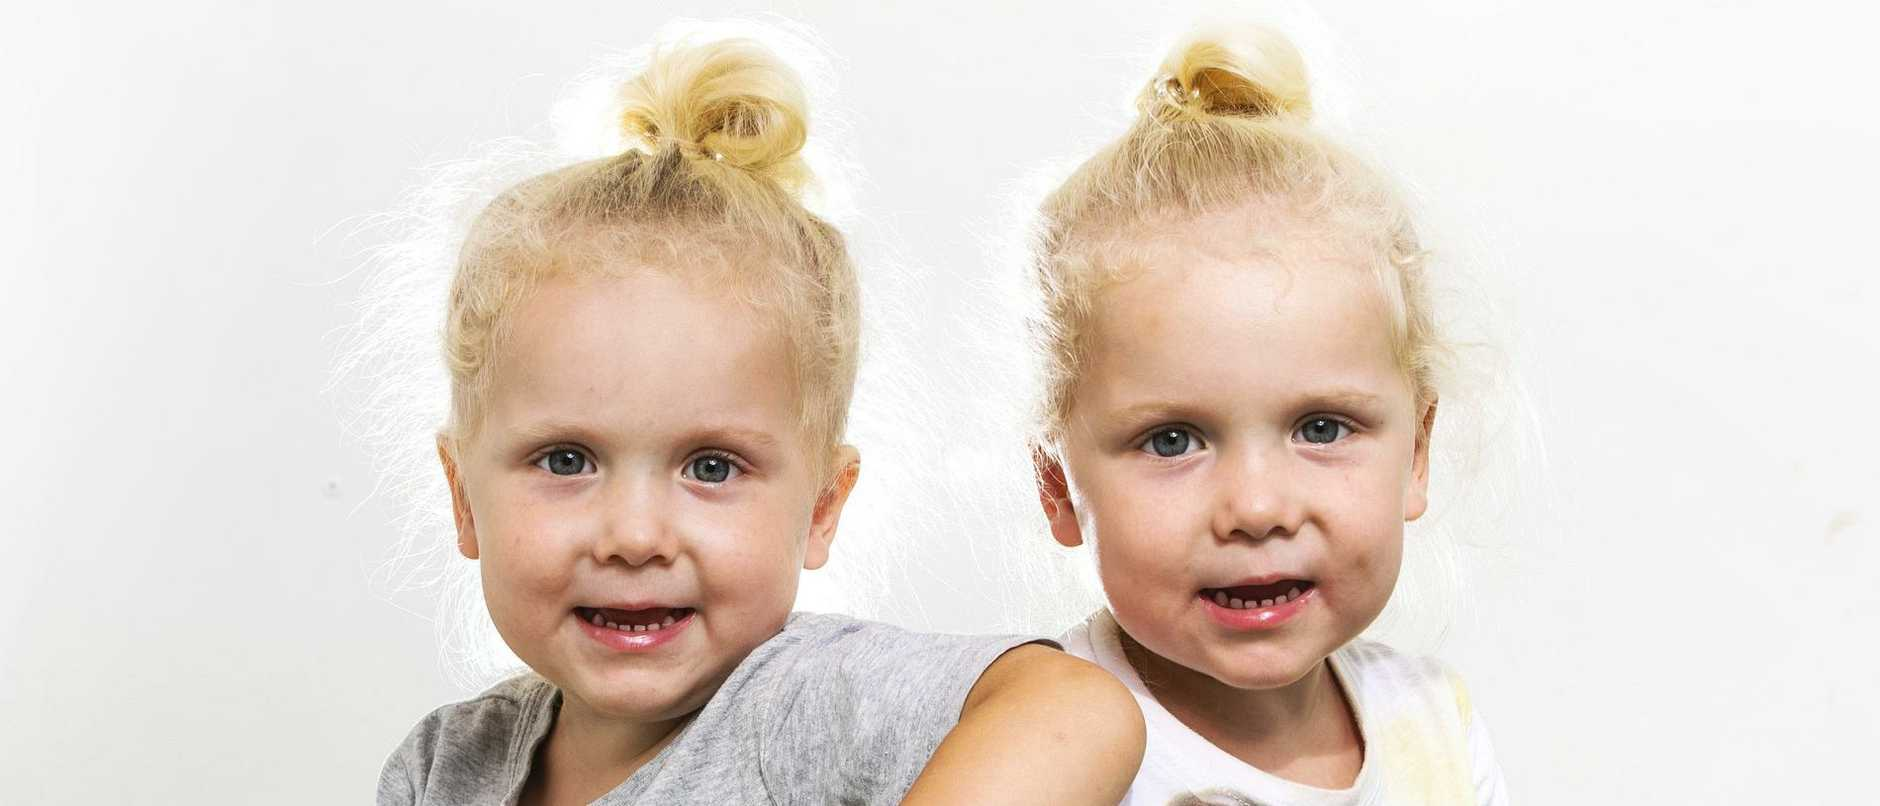 Identical twins don't all have same DNA